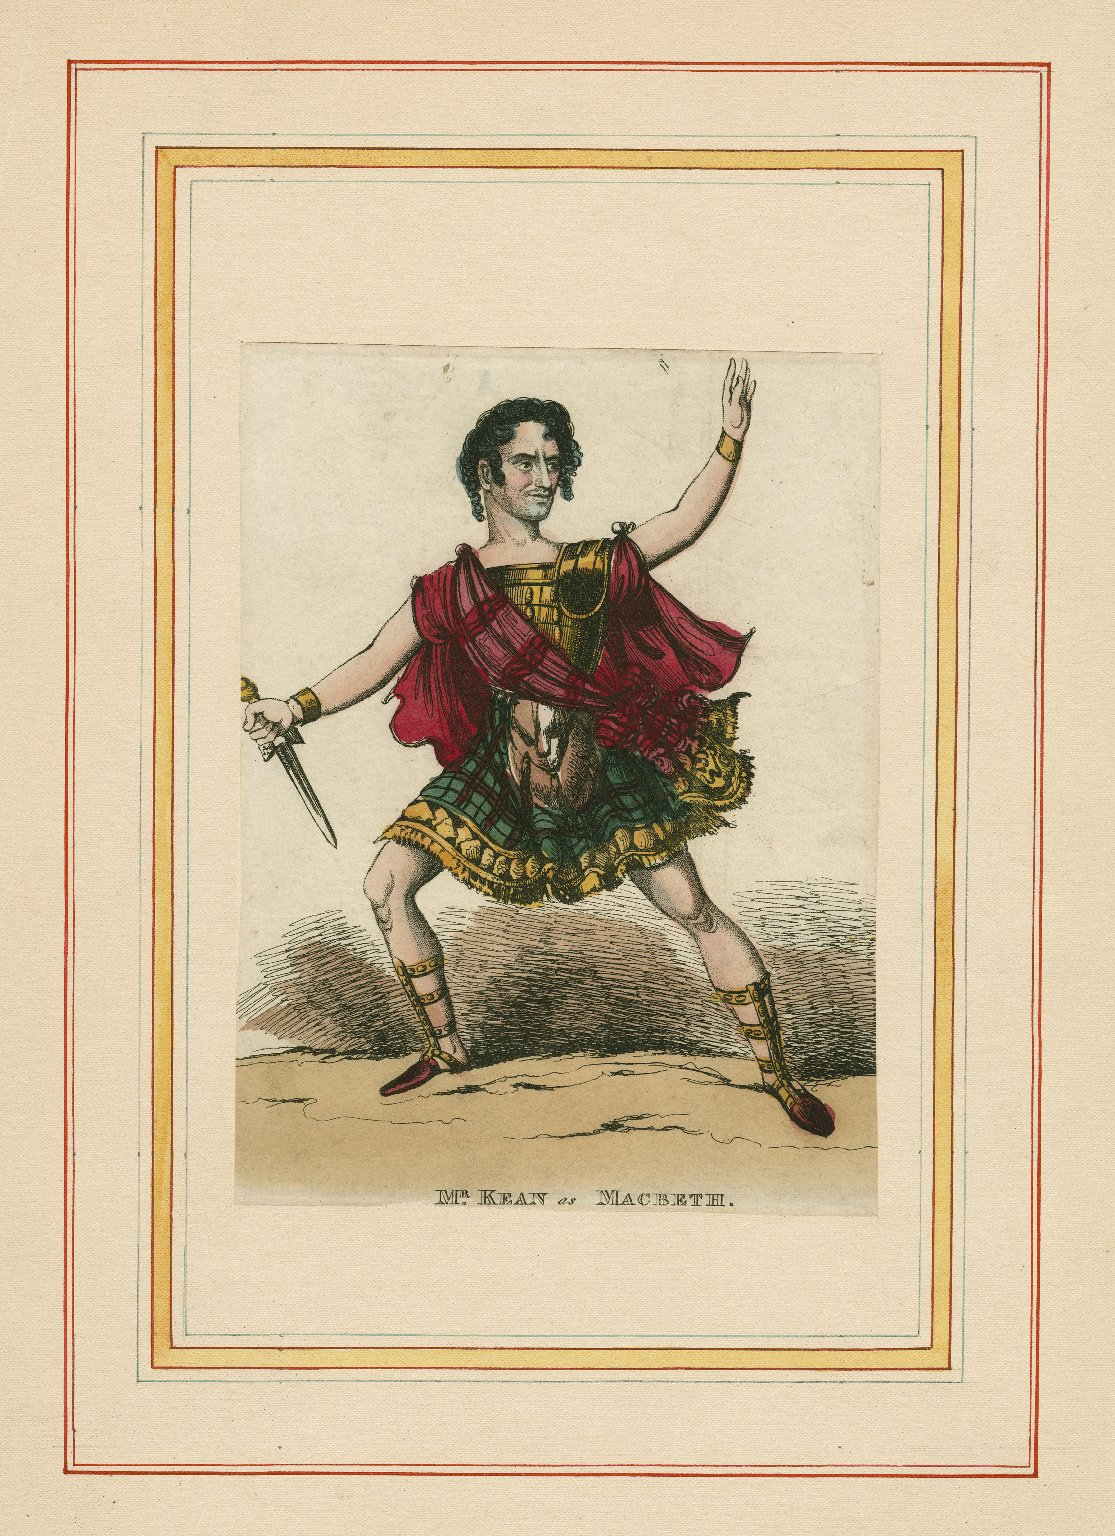 <b>Macbeth, 1822</b>     	</br>Actor Edmund Kean as Macbeth, 1822</br><br/><b>Source: </b><i>Mr. Kean as Macbeth (Call number: ART File K24.4 no.83), 1822, Folger Digital Image Collection, University of Cincinnati Libraries Digital Collections, University of Cincinnati, http://digproj.libraries.uc.edu:8180/luna/servlet/s/g39vi3</i>